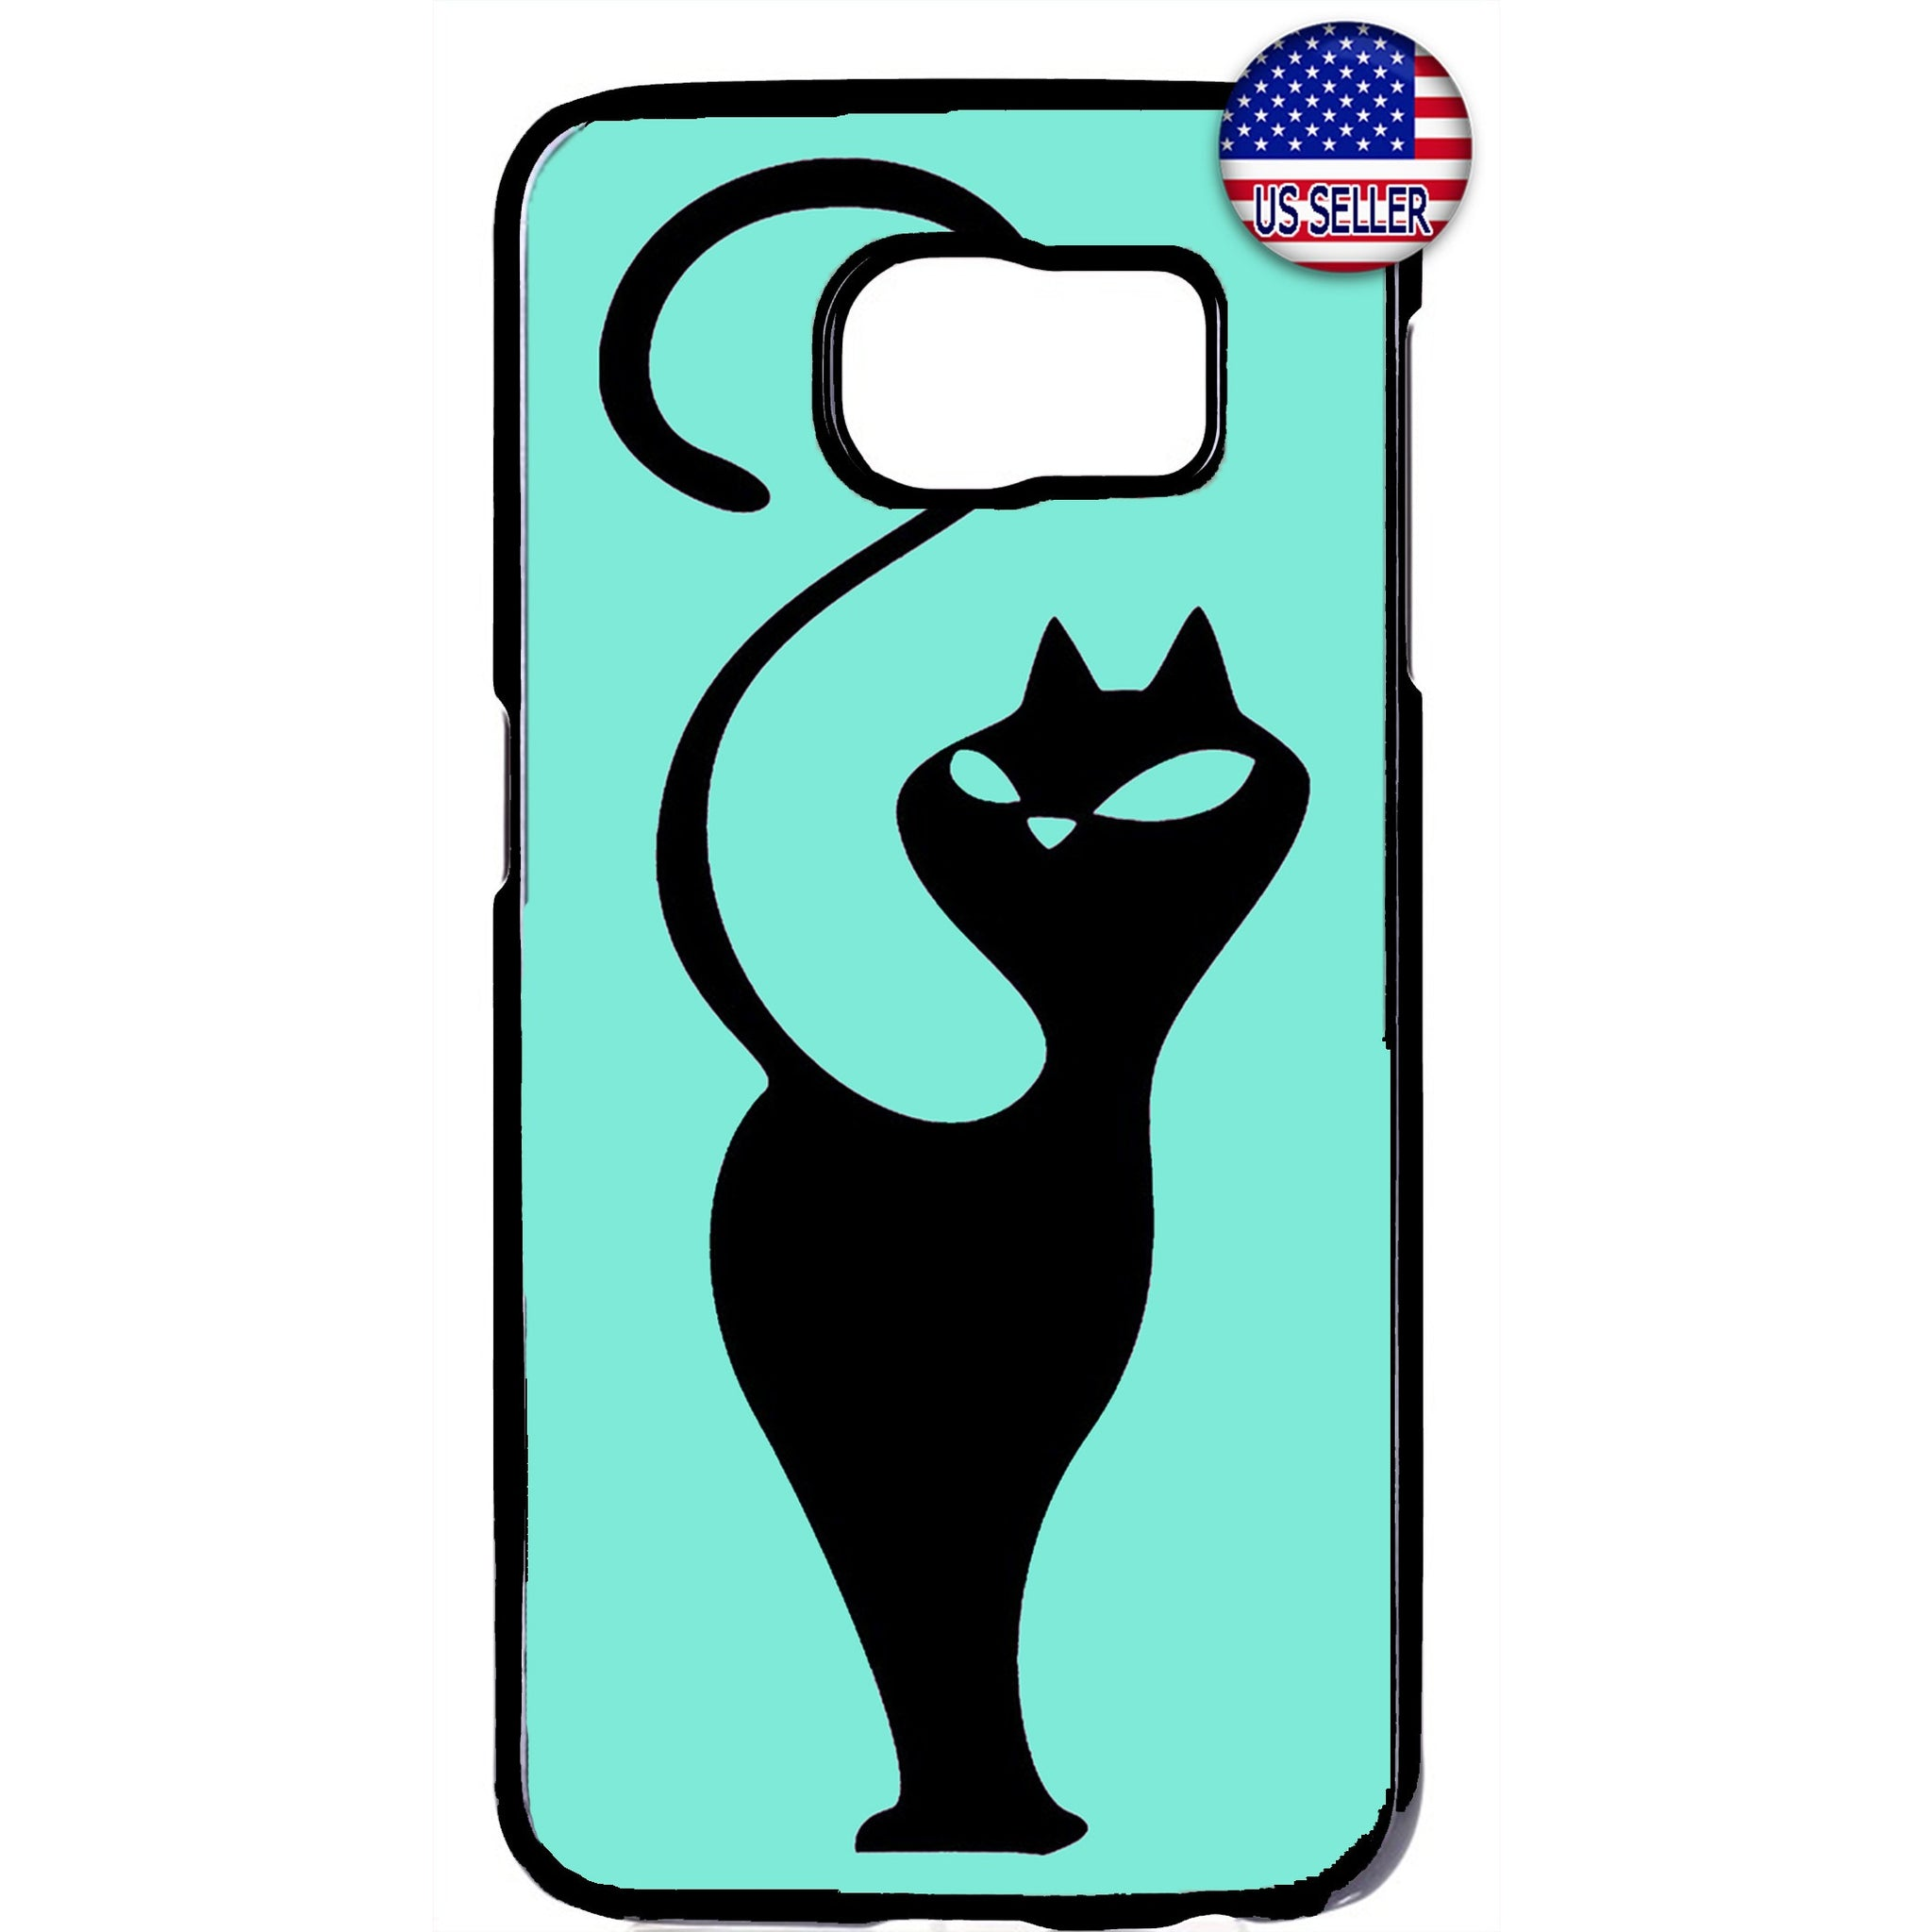 Cat In Teal Silhouette Kitty Pet Animal Rubber Case Cover For Samsung Galaxy Note